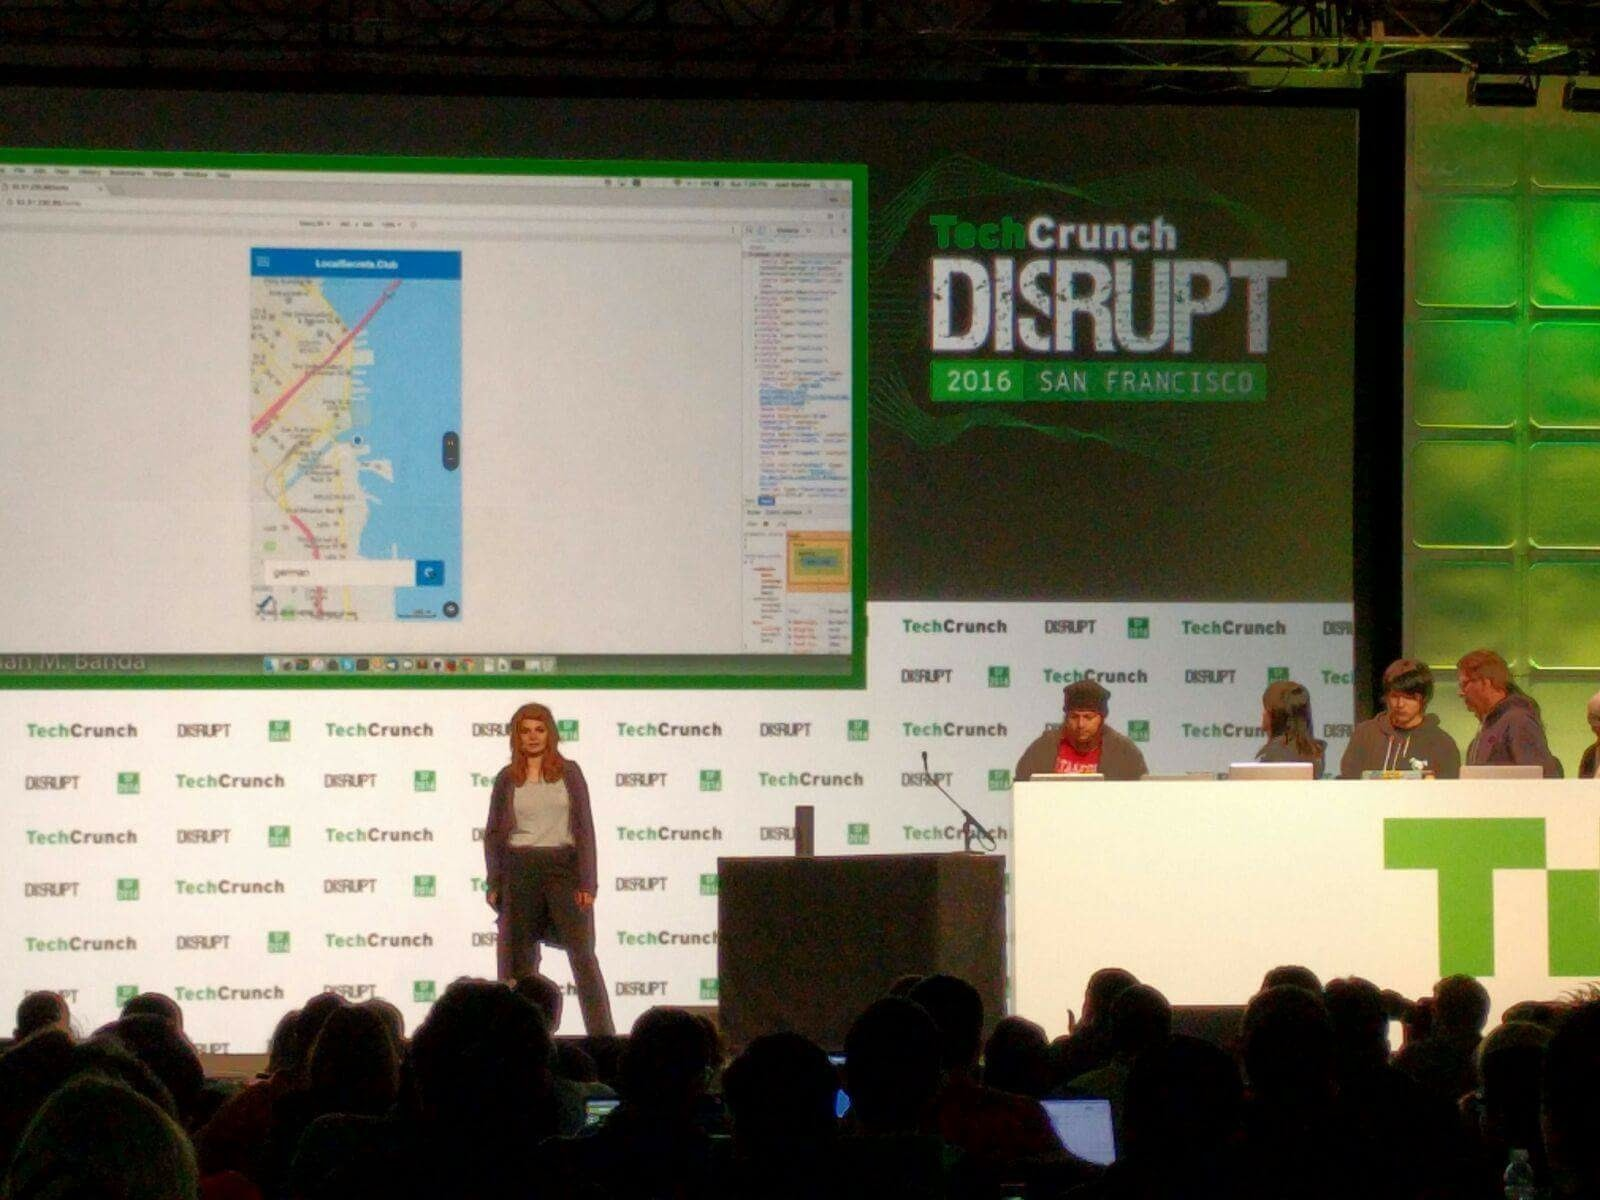 Presenting the our app on the stage at TechCrunch Disrupt Hackathon  2016. One minute pitch in front of an audience of over 500 people.